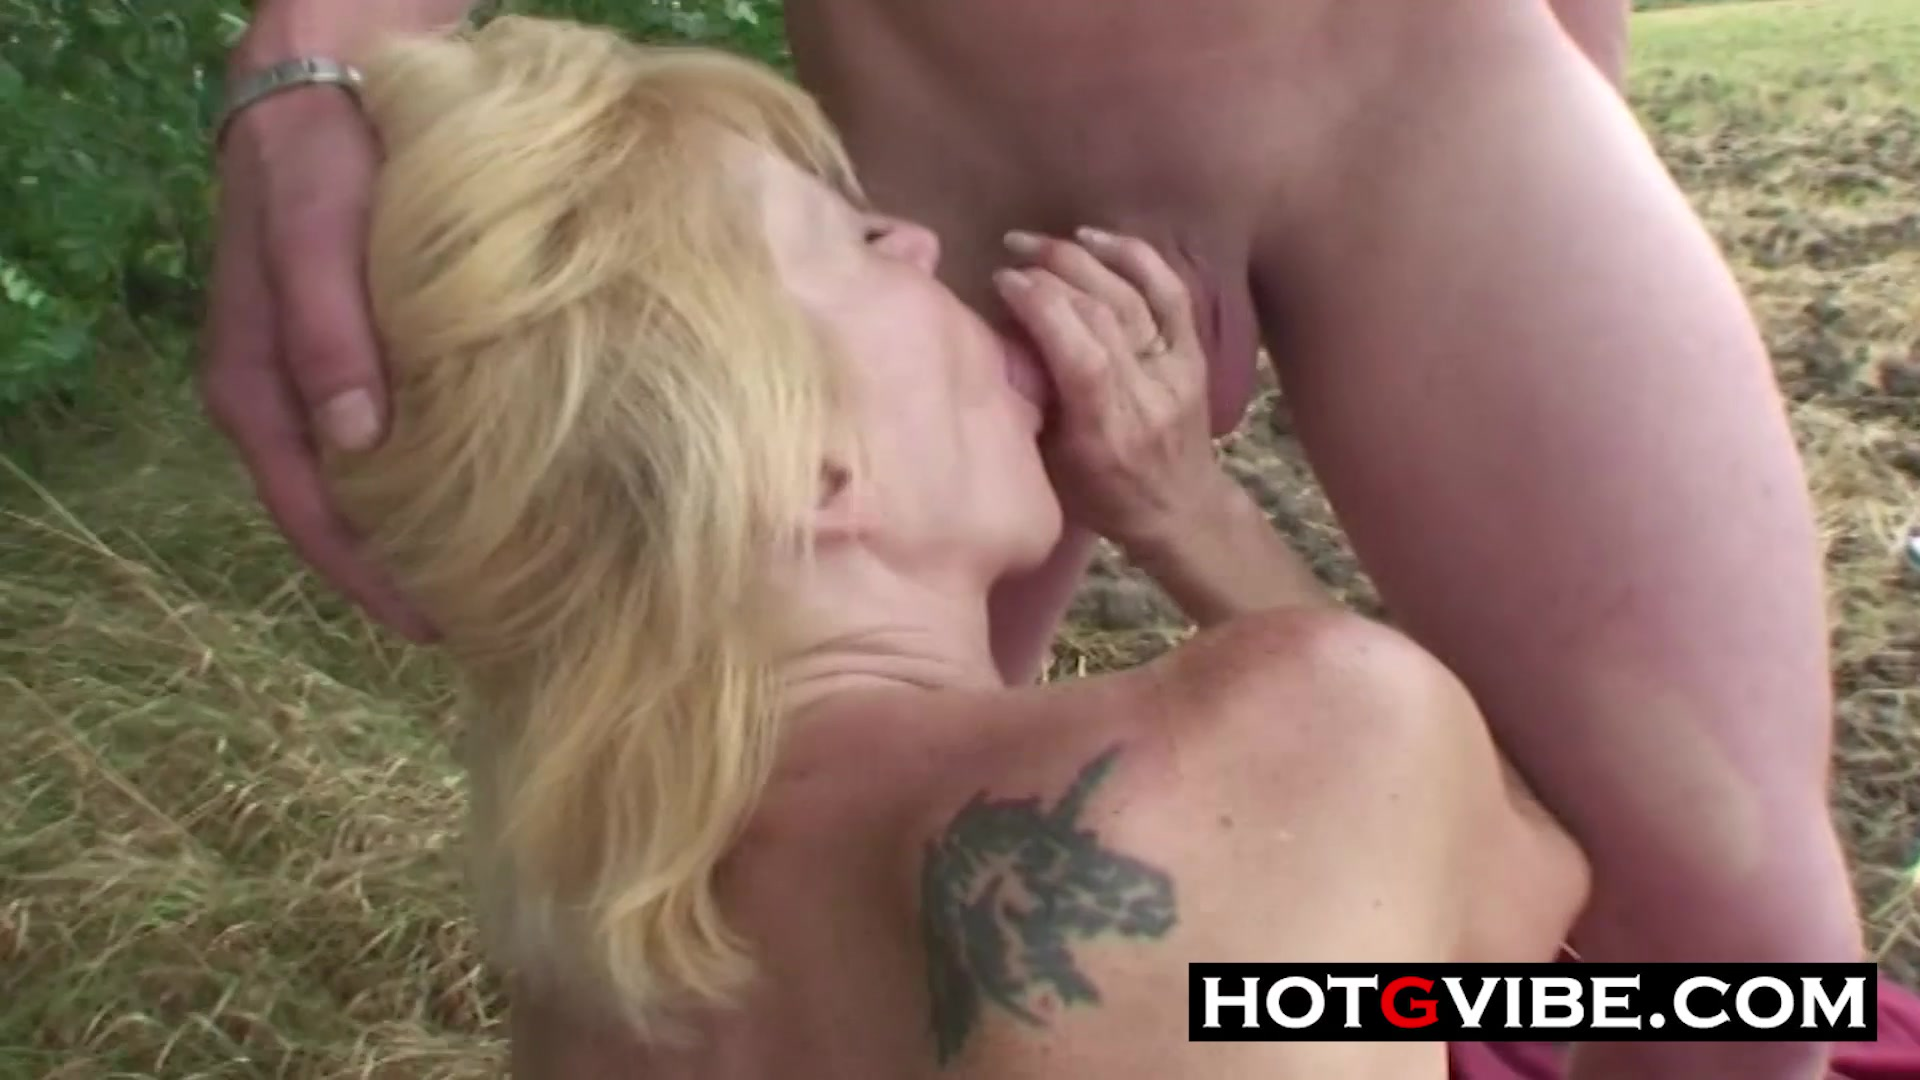 Mature Blonde Threesome In Public with Young Hans christian andersen books